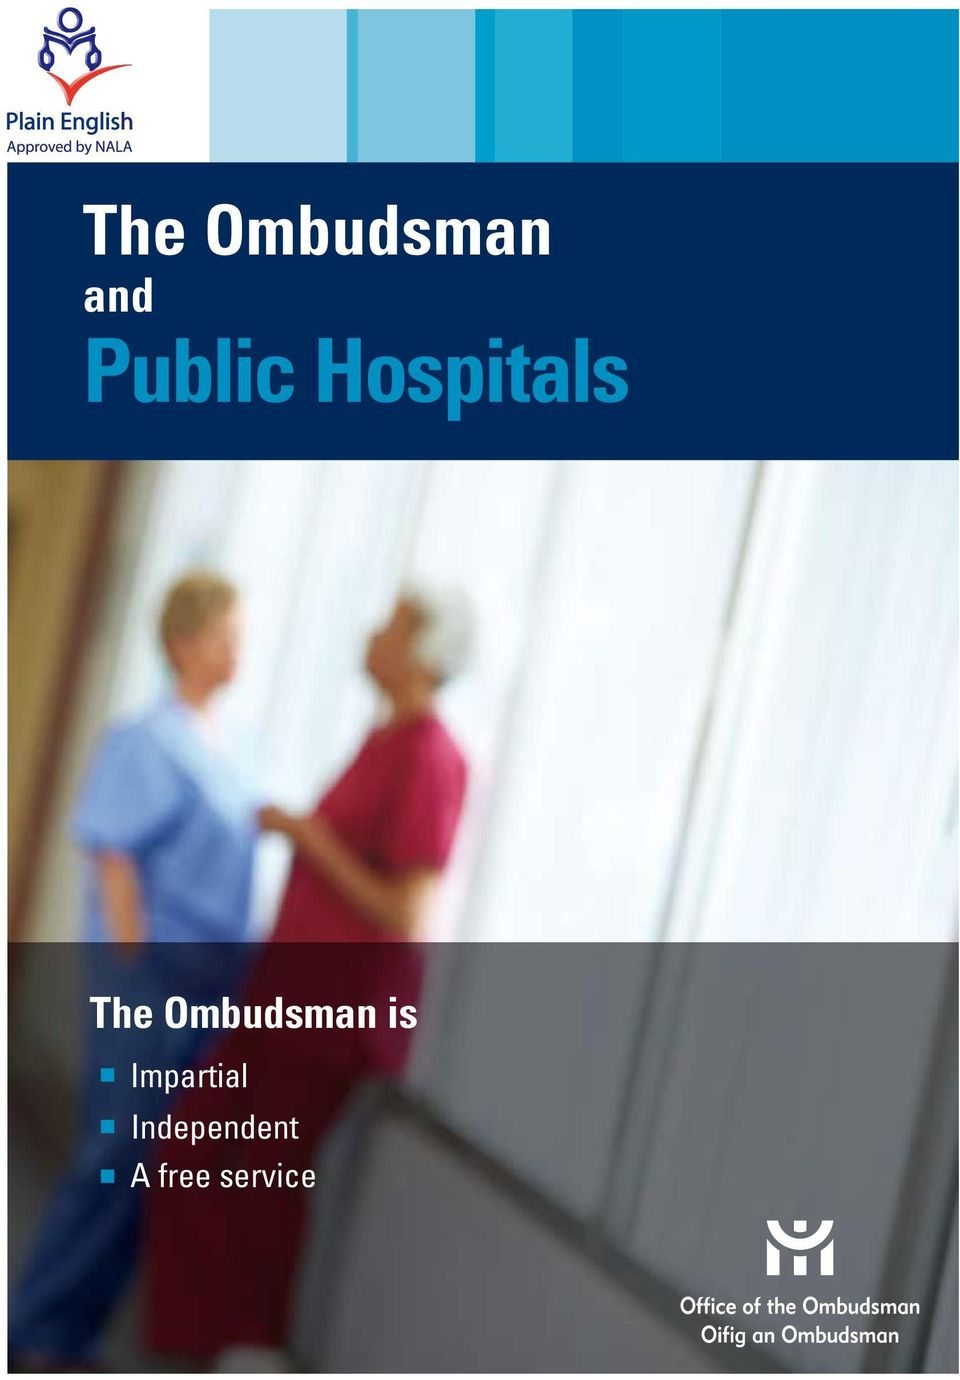 Ombudsman is